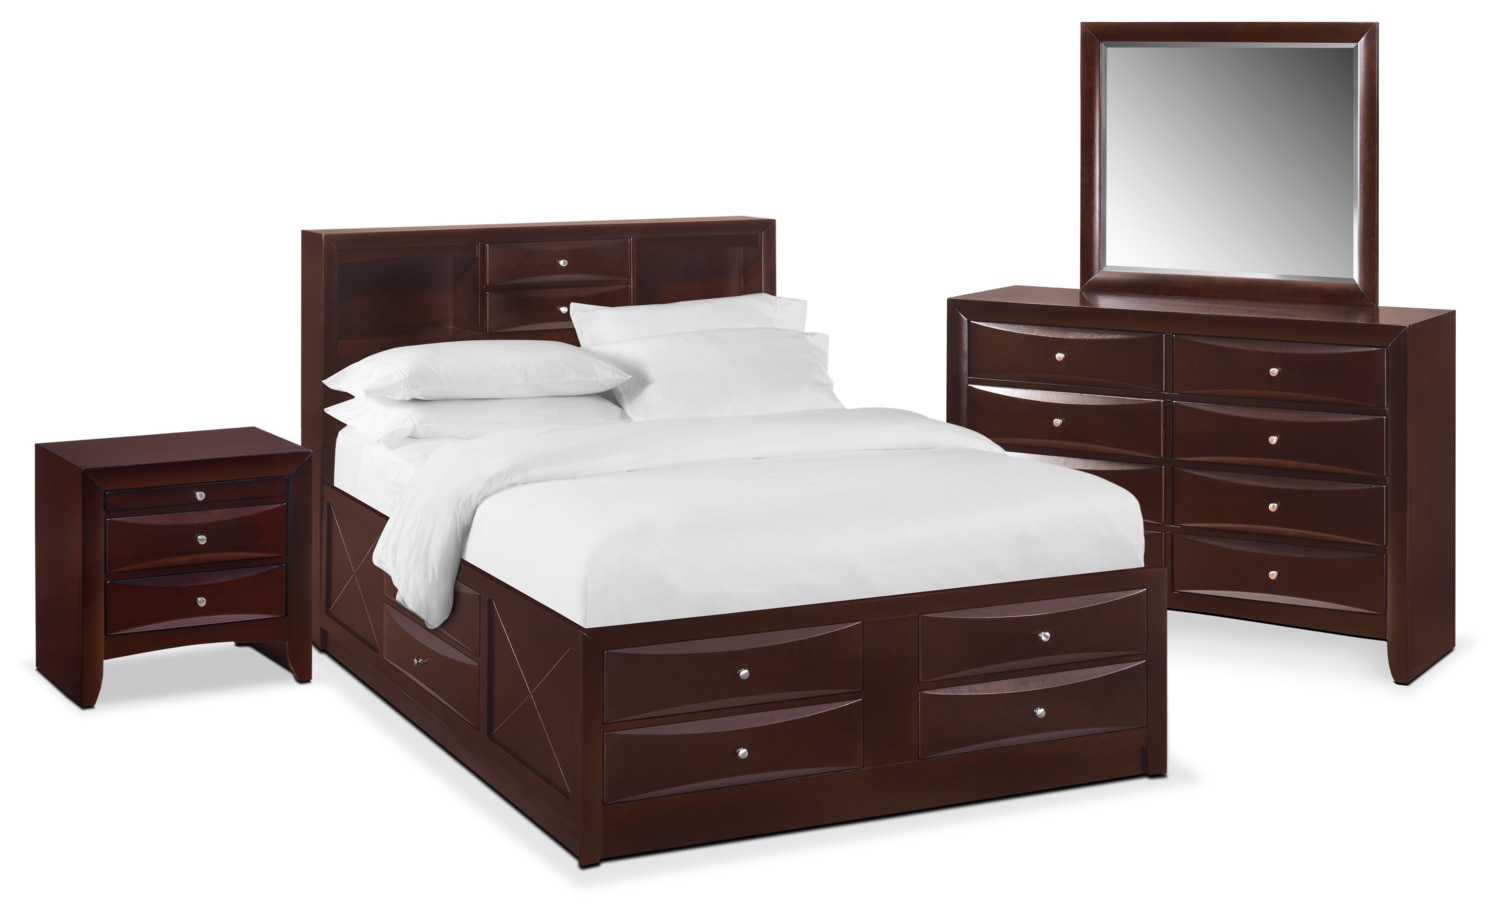 Bedroom Furniture - Braden 6-Piece Bookcase Bedroom Set with Storage, Nightstand, Dresser and Mirror